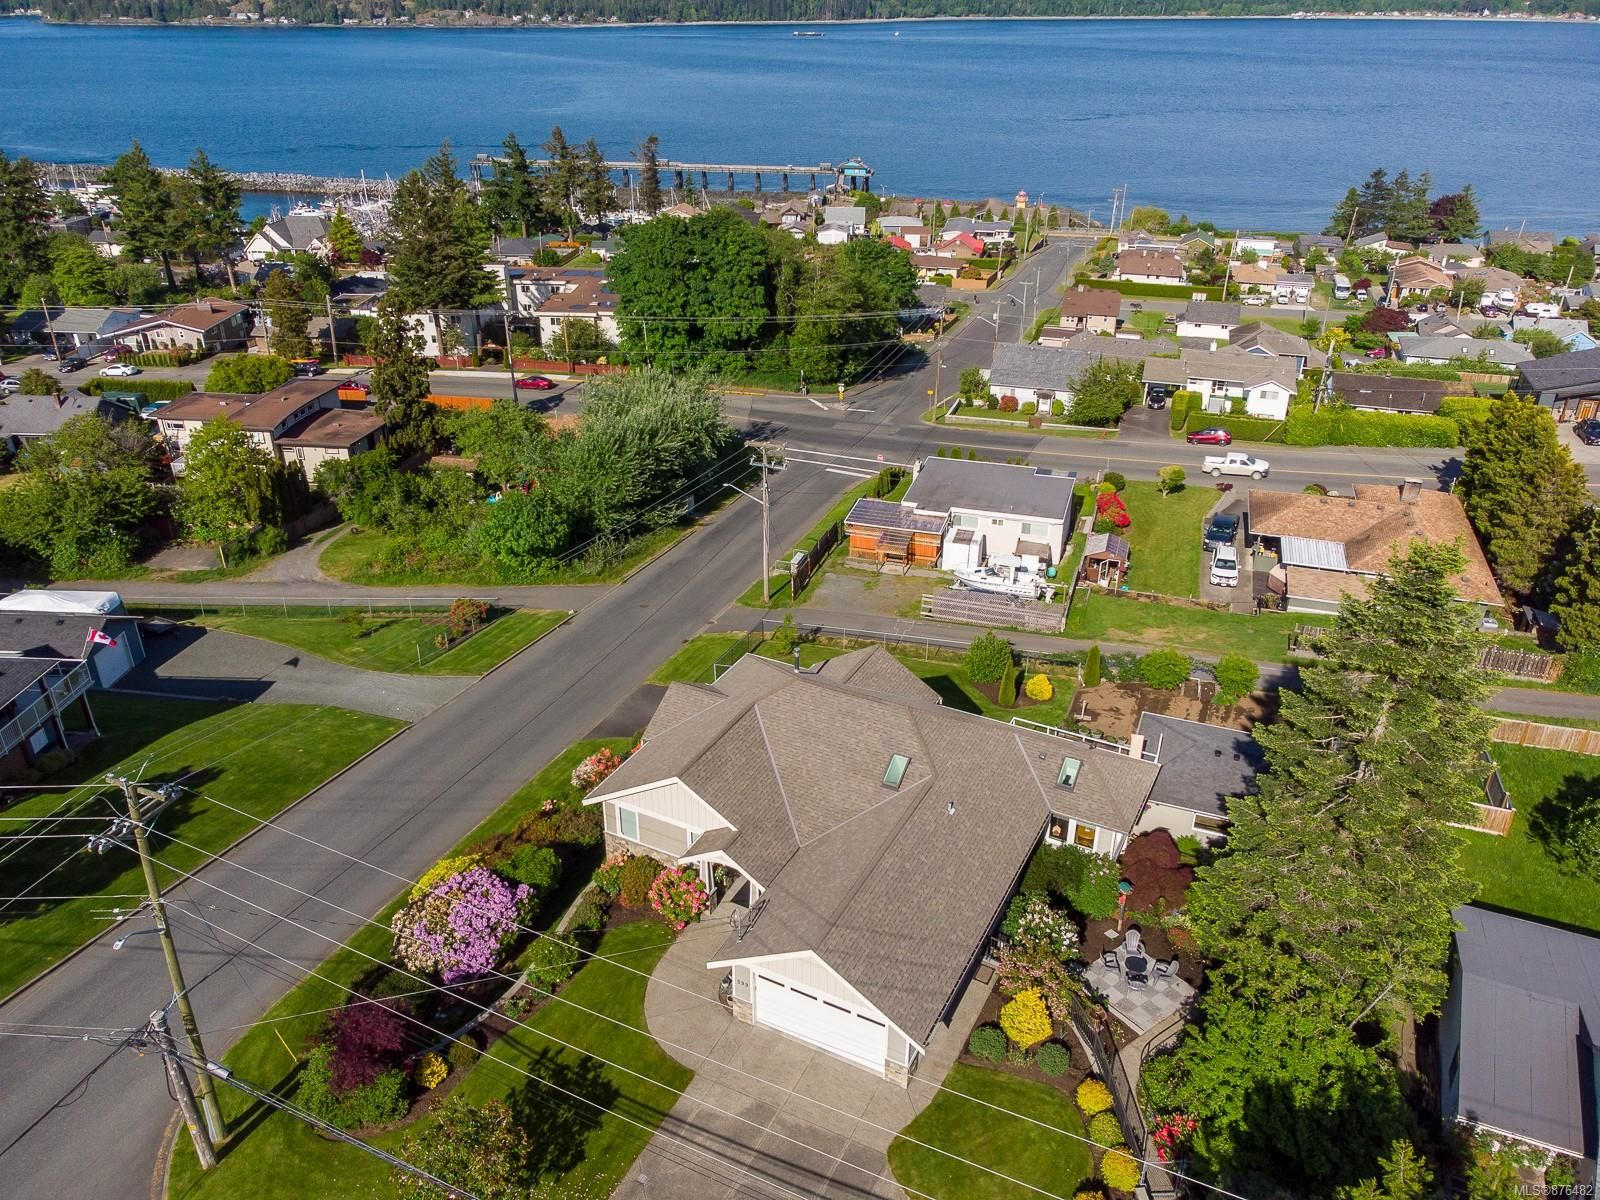 Main Photo: 599 Birch St in : CR Campbell River Central House for sale (Campbell River)  : MLS®# 876482